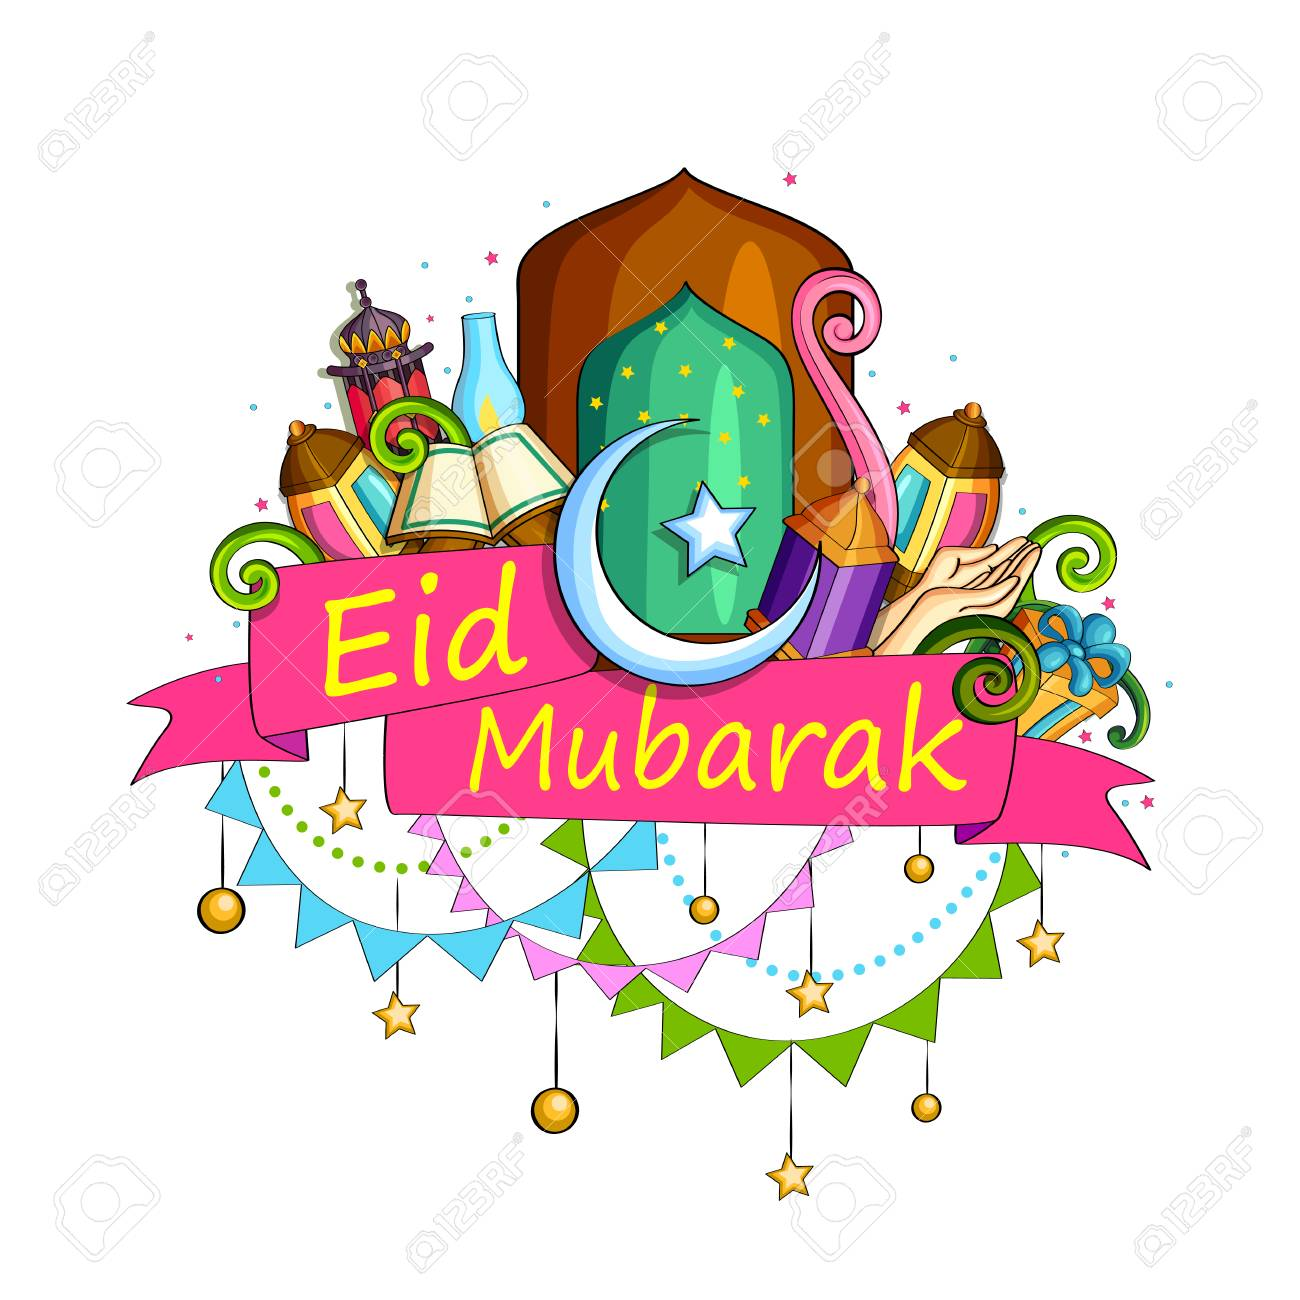 Eid Mubarak Blessing For Eid Background Royalty Free Cliparts Vectors And Stock Illustration Image 79410067